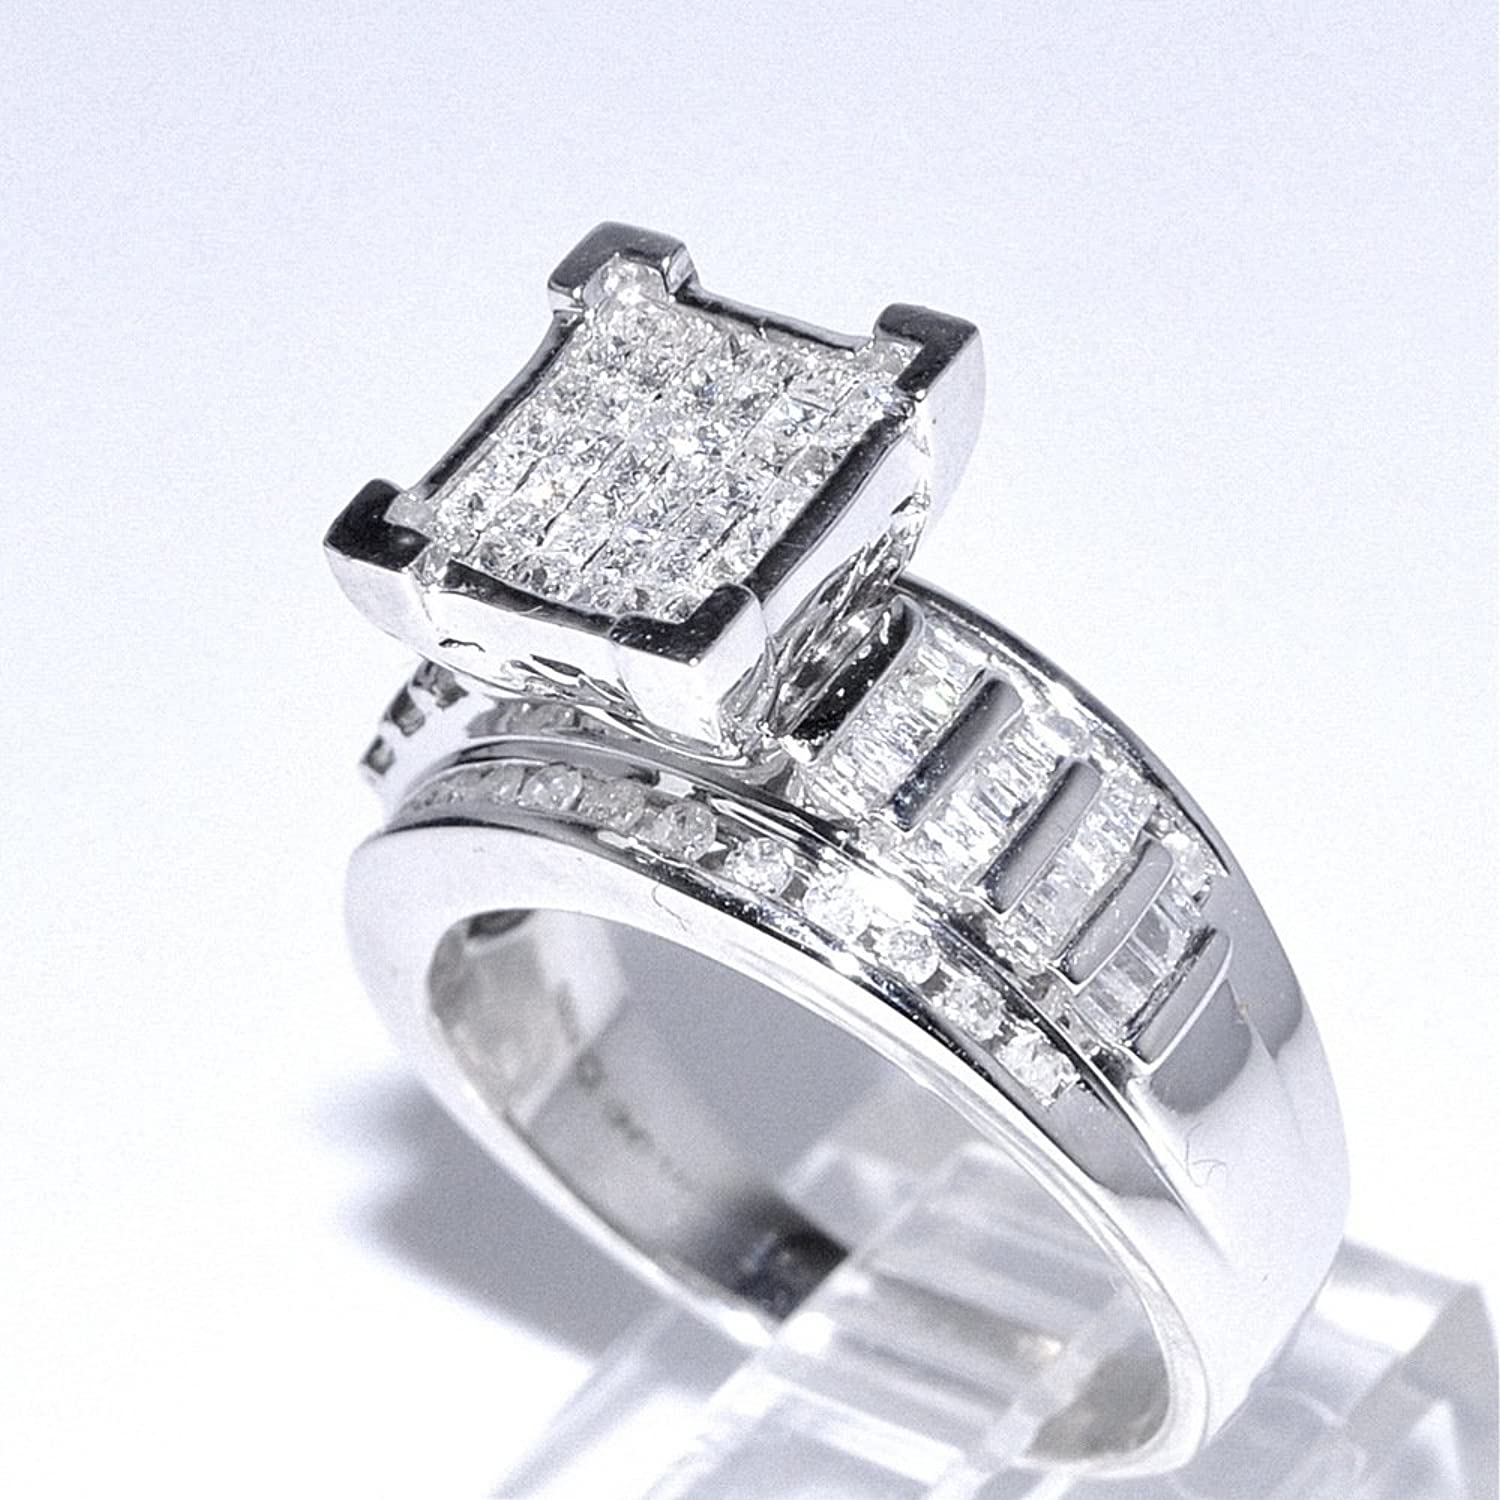 fire product rings engagement cut princess wedding diamond ring glacier lg canadian